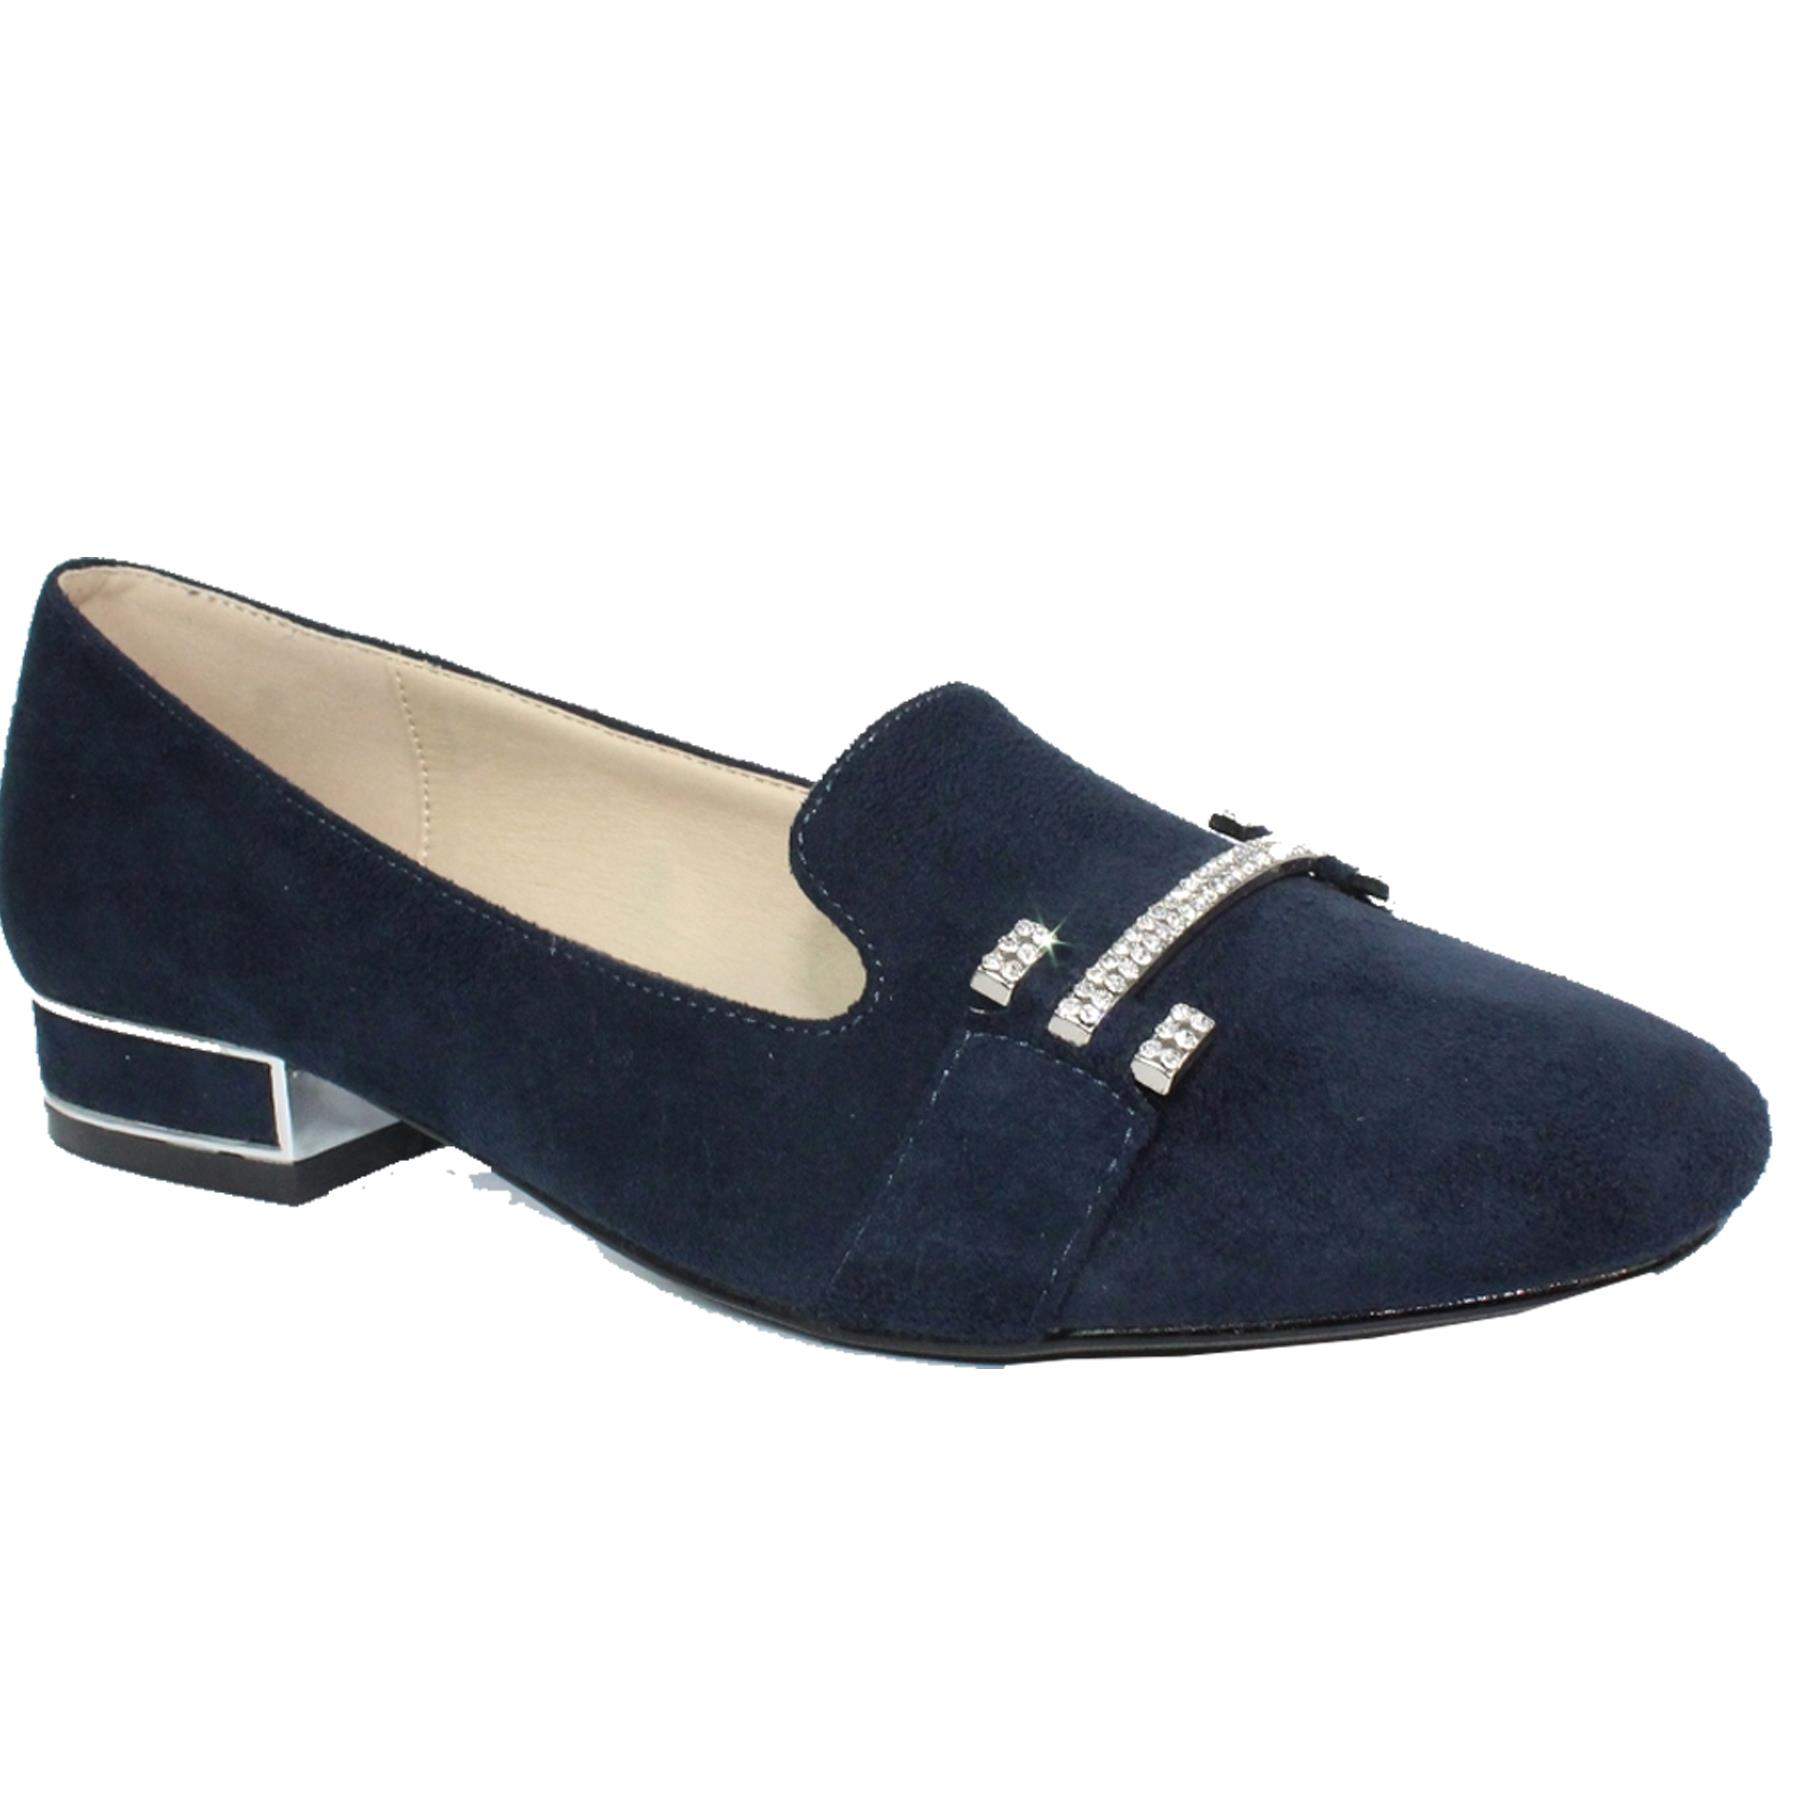 FLH930 Tessa Slip On Diamante Faux Suede Pumps Flat Padded Insole Shoes